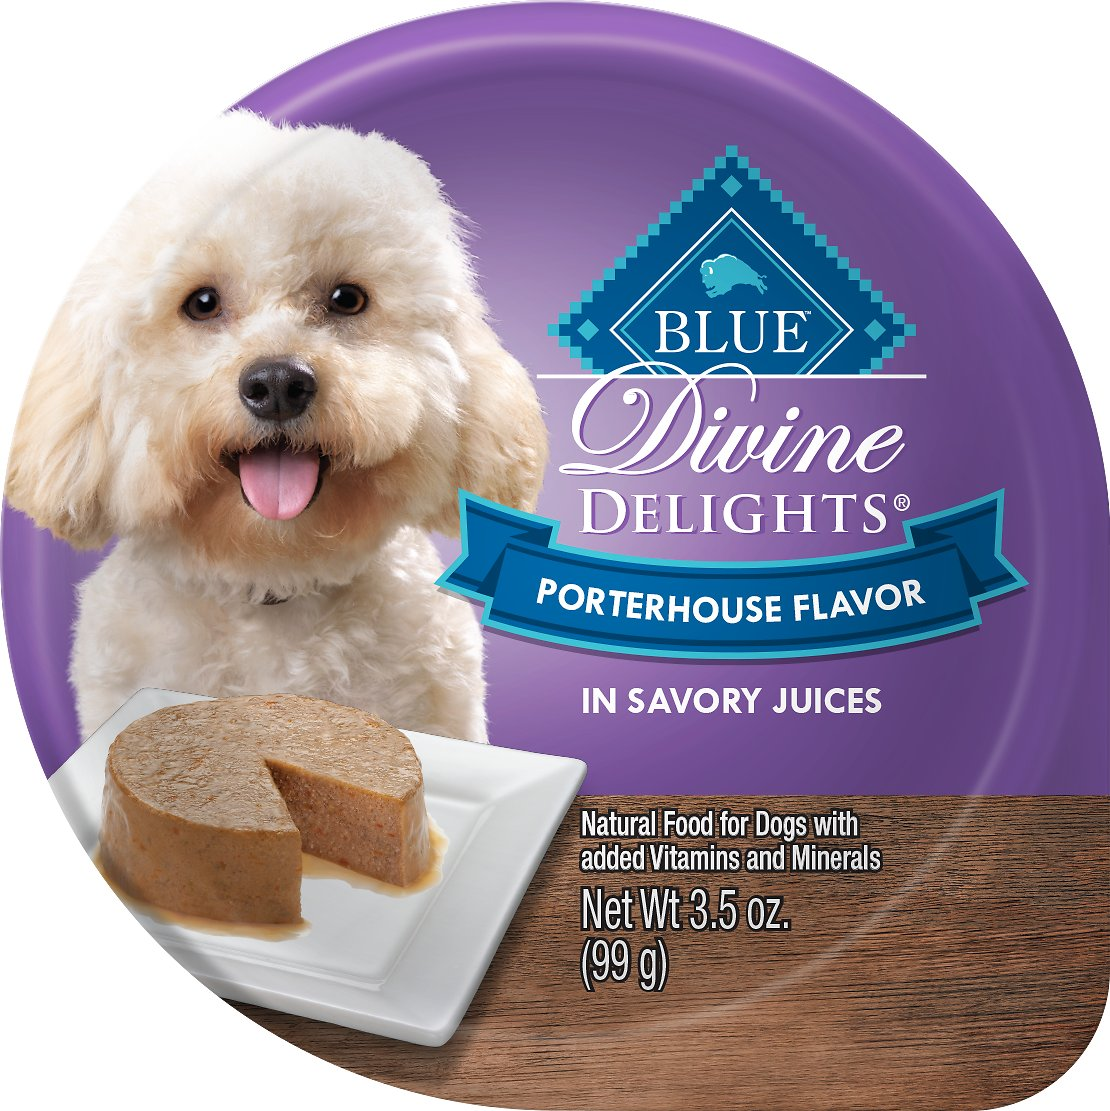 Blue Buffalo Divine Delights Porterhouse Flavor Pate Dog Food Trays Image